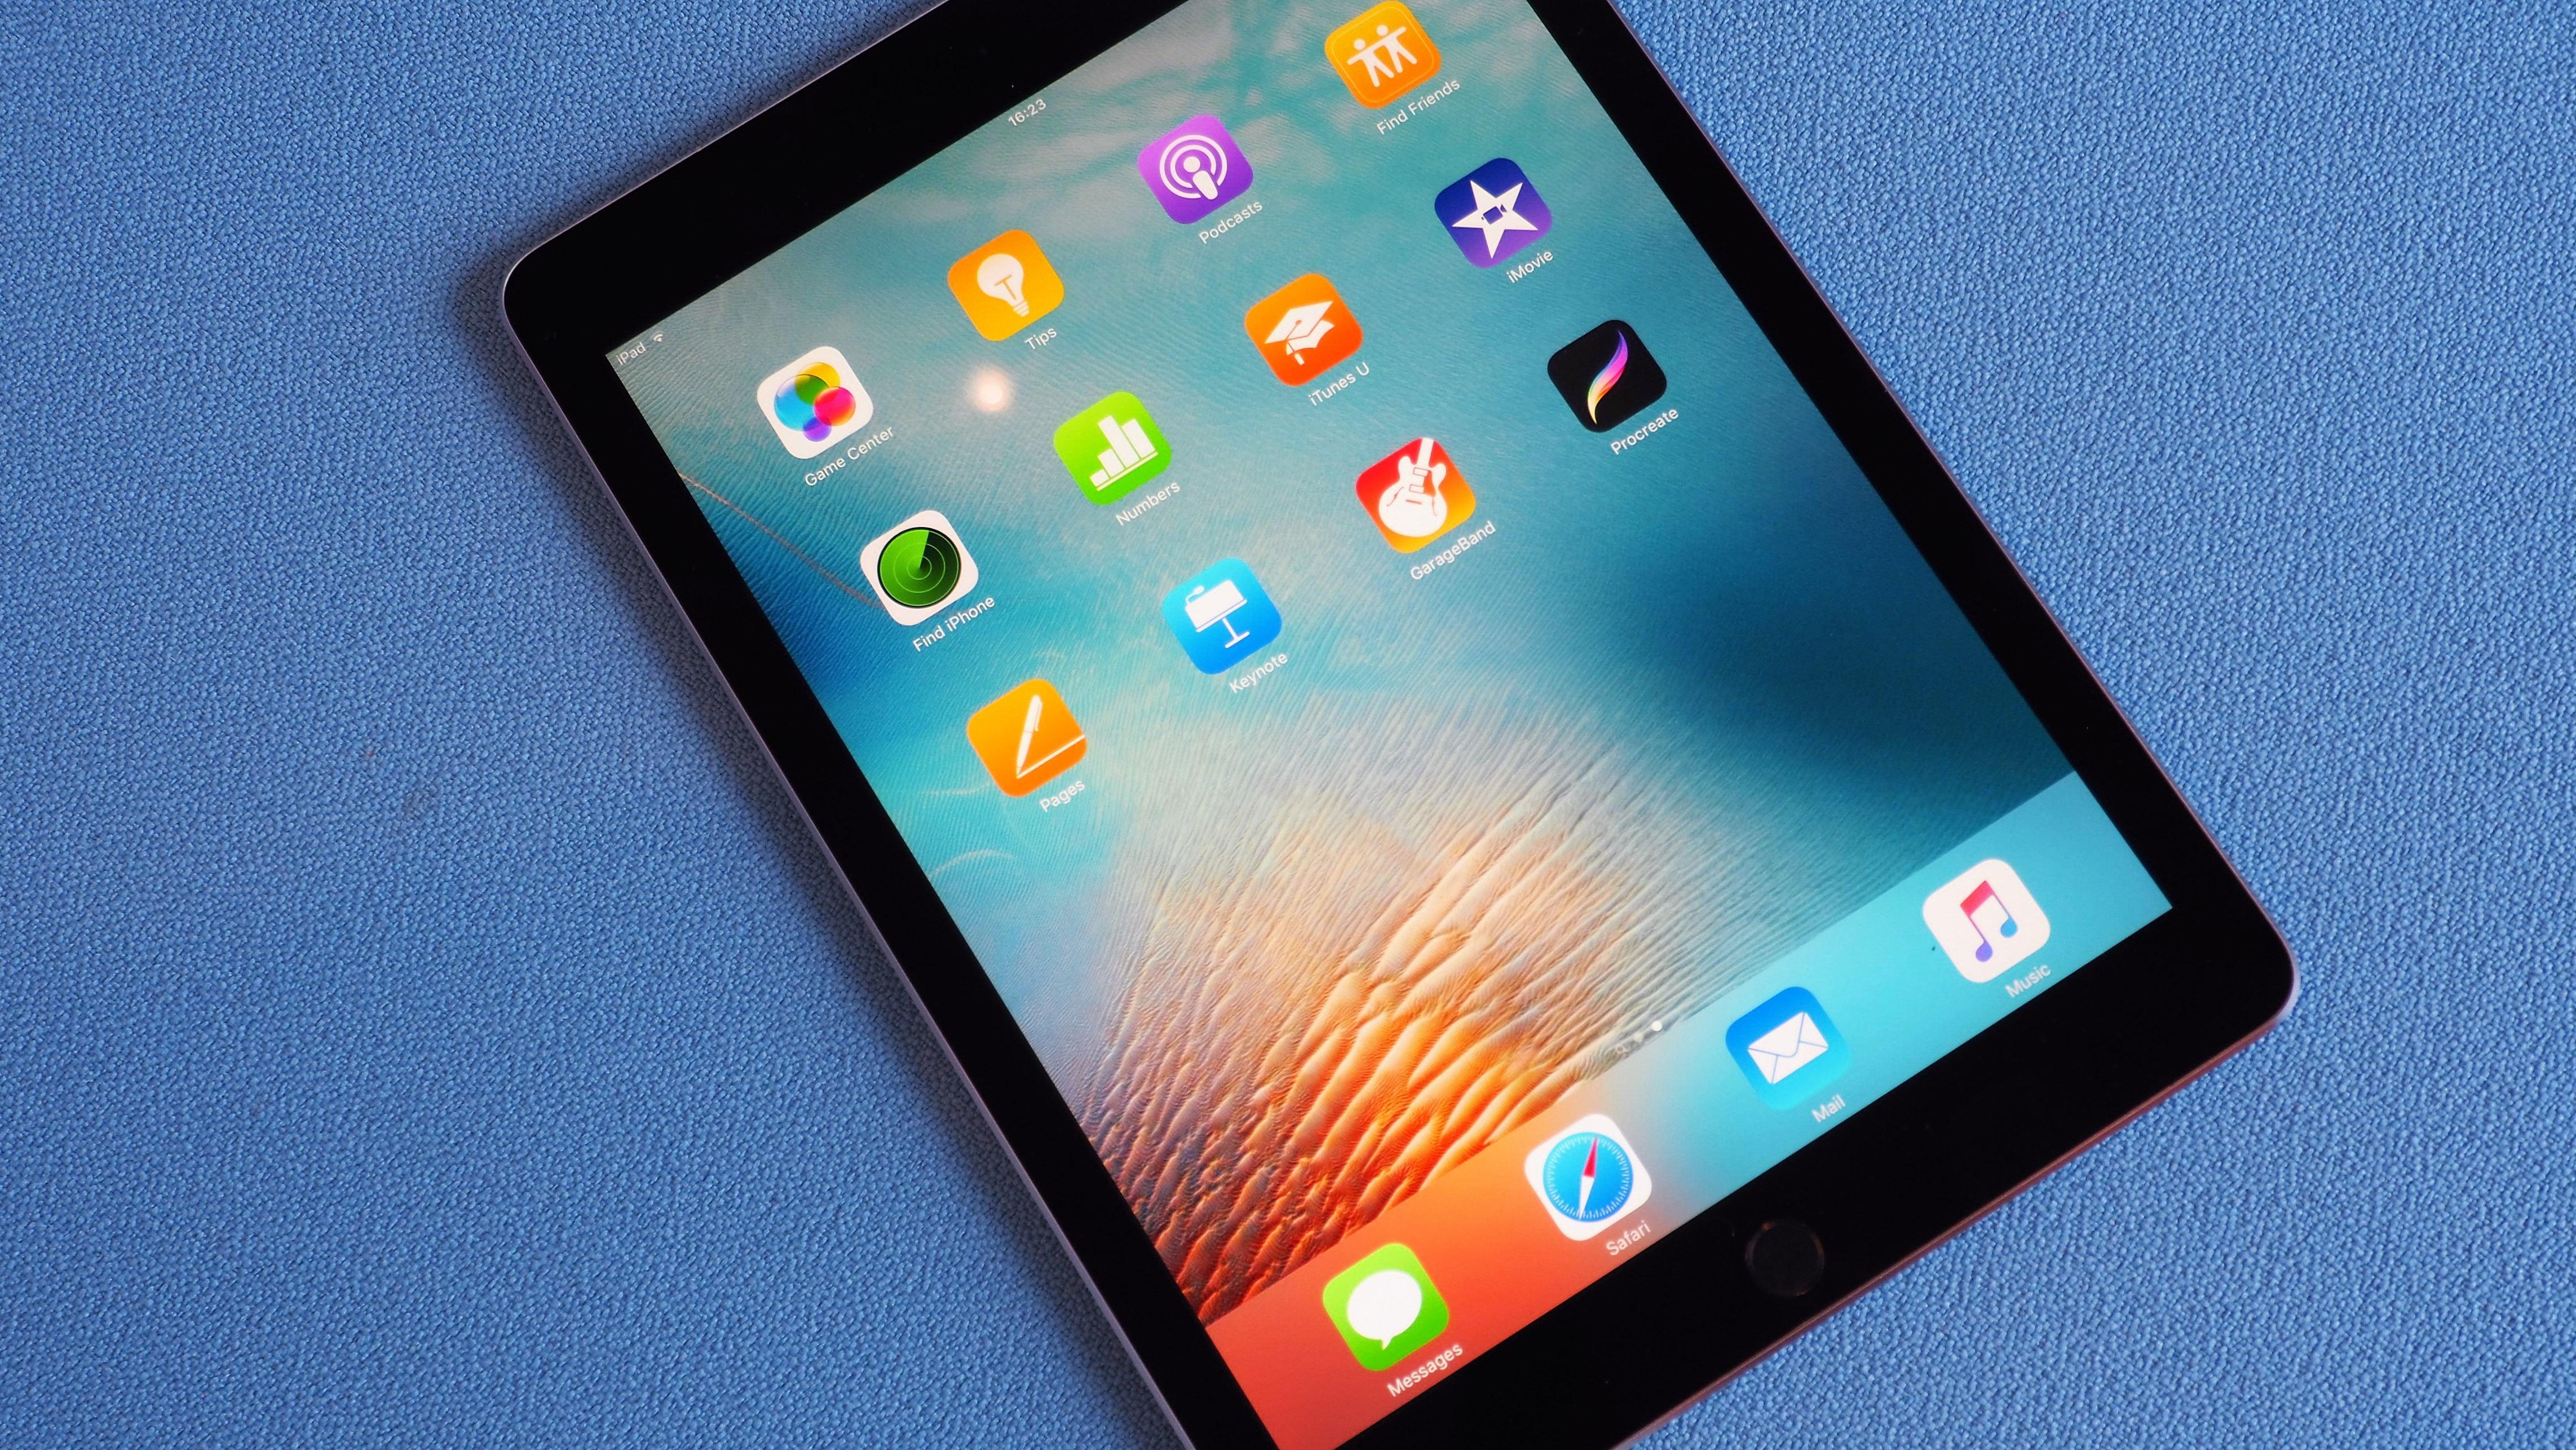 iPad Pro 9 7 review: simply a great tablet | T3